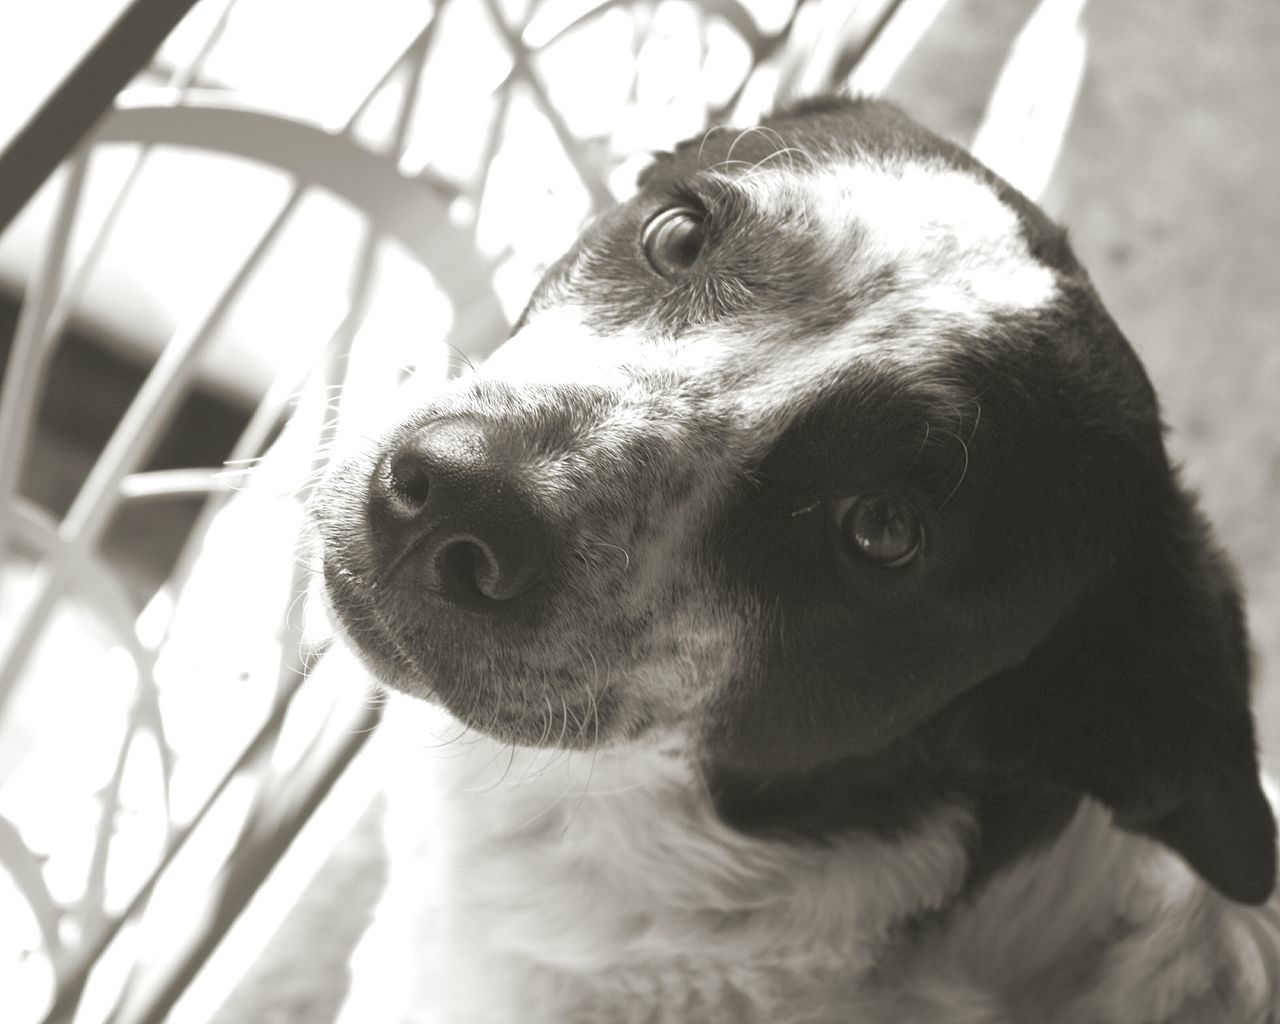 Dog Black And White Chien Noir Et Blanc Popular Popular Photos Cute Pets Cute Dogs Pets Pet Photography  Animal Portrait Animal Themes Animal Photography EyeEm Gallery EyeEm Best Shots Eyem Gallery Animal Chiens Domestic Animals No People One Animal Tranquil Scene Scène De Vie